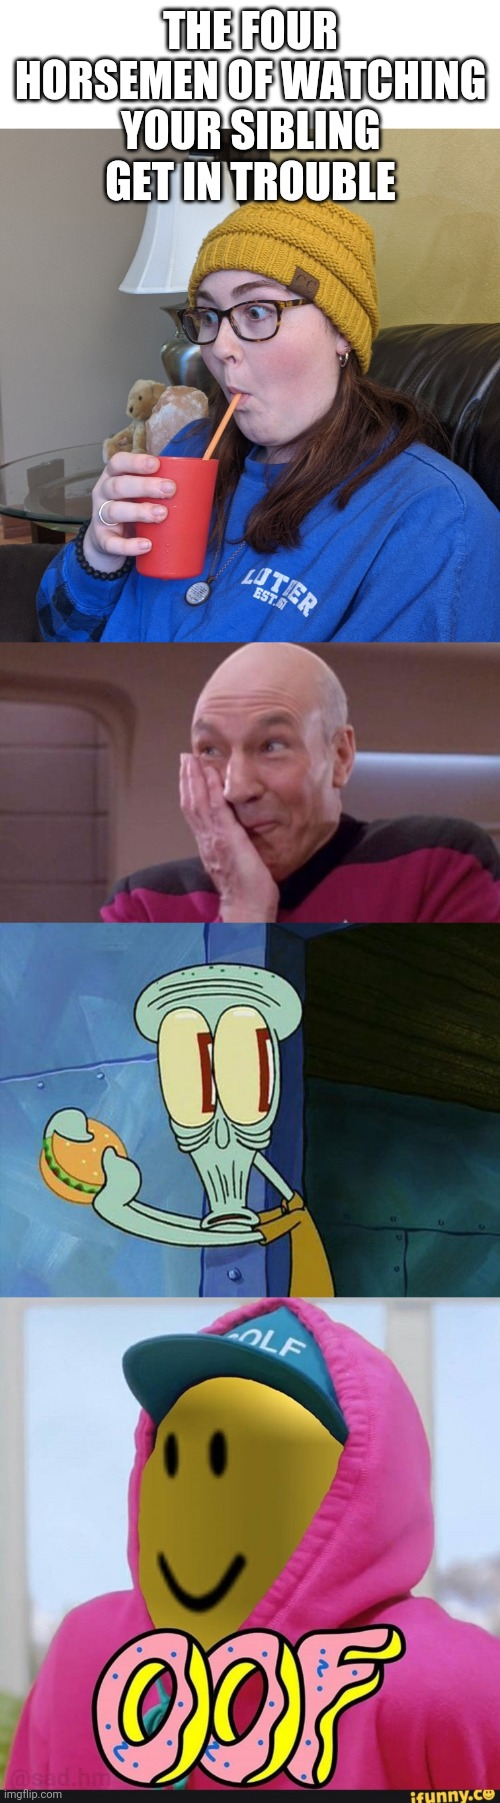 THE FOUR HORSEMEN OF WATCHING YOUR SIBLING GET IN TROUBLE | image tagged in picard oops,oh shit squidward,roblox oof | made w/ Imgflip meme maker